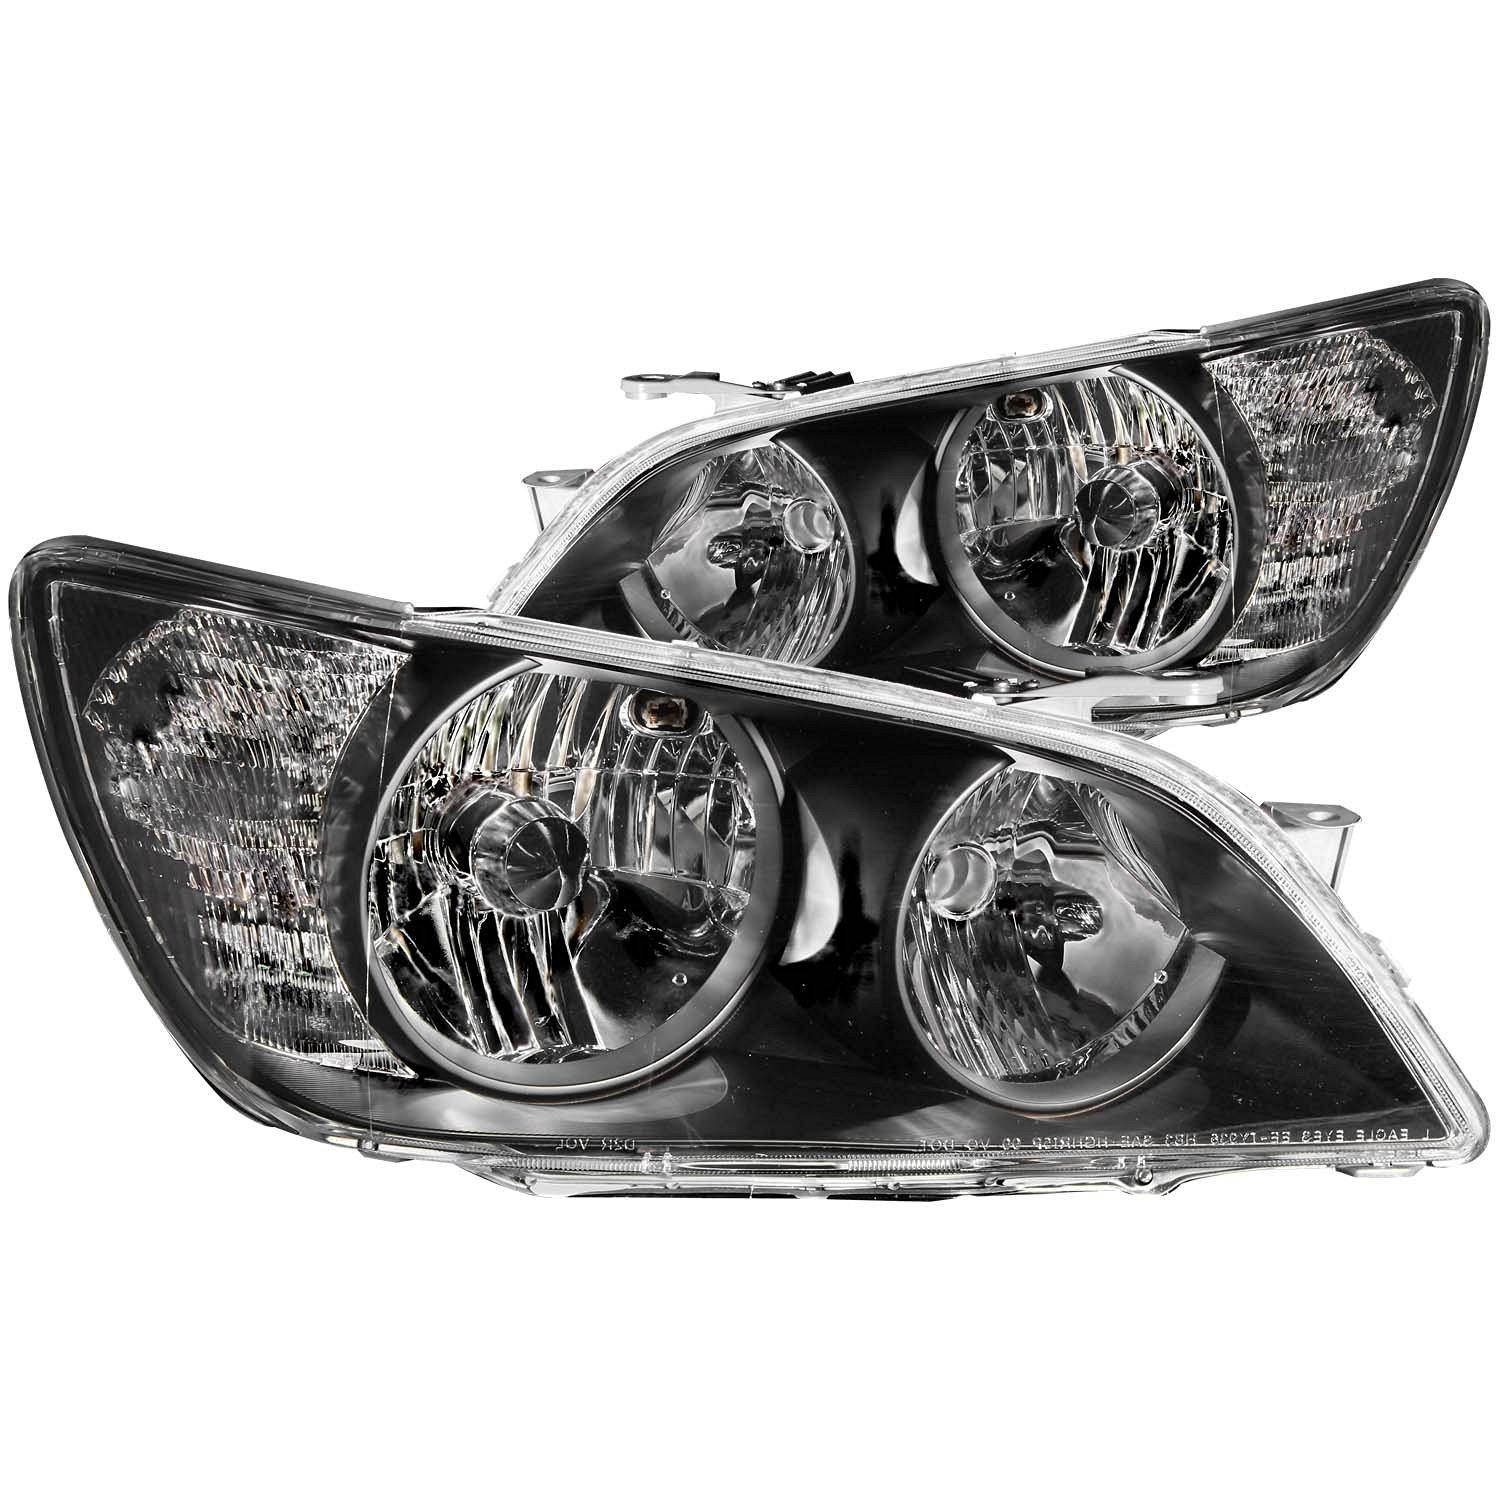 Get Quotations · FRONT HEADLIGHT Lexus IS300 IS 300 2005 CRYSTAL BLACK